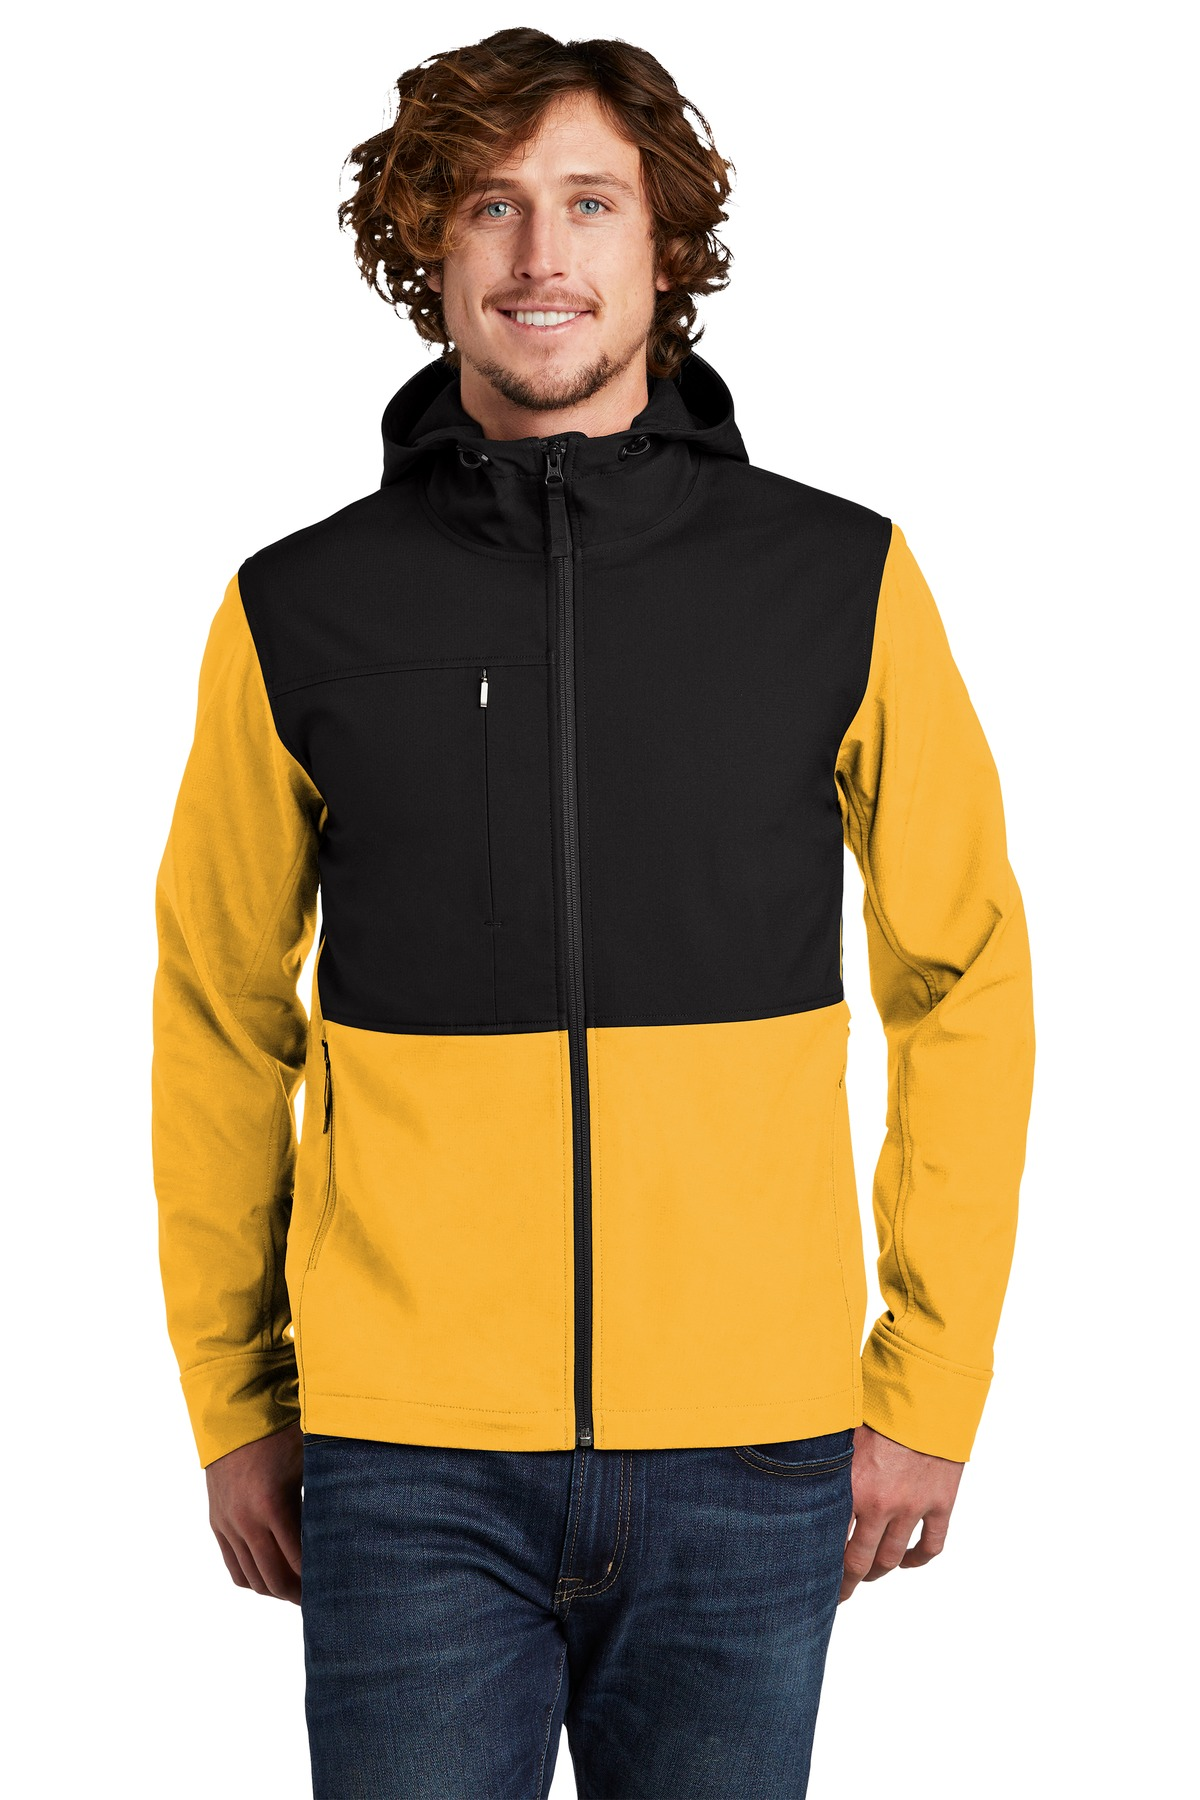 The North Face  ®  Castle Rock Hooded Soft Shell Jacket. NF0A529R - TNF Yellow